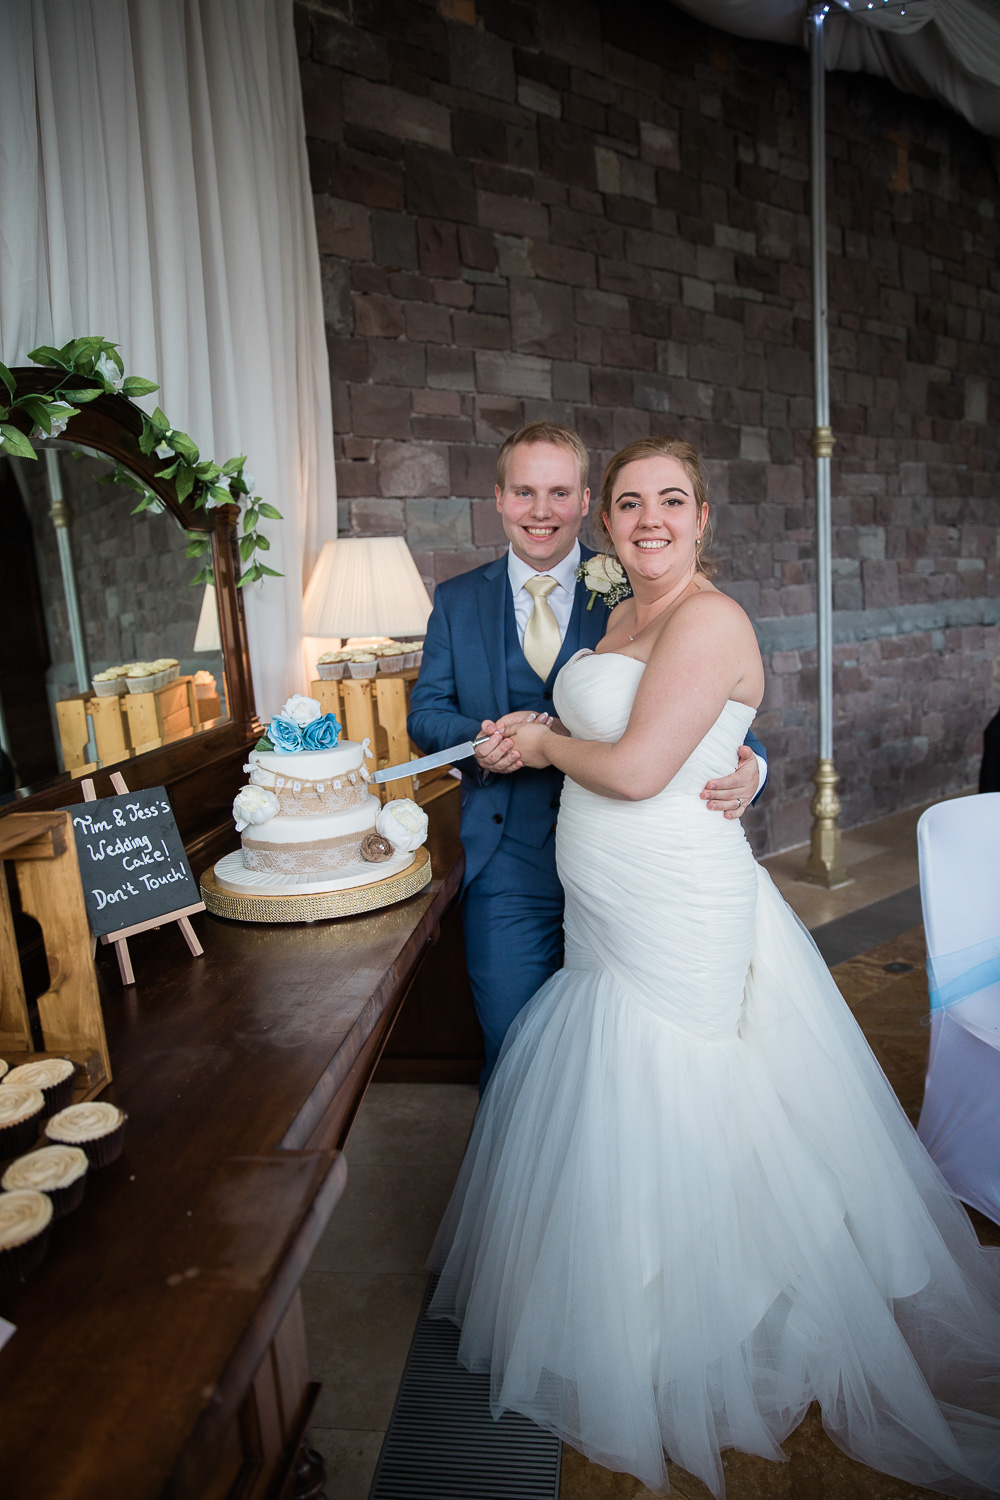 Cardiff Wedding Photographer Blog 20.05.2017-80.jpg